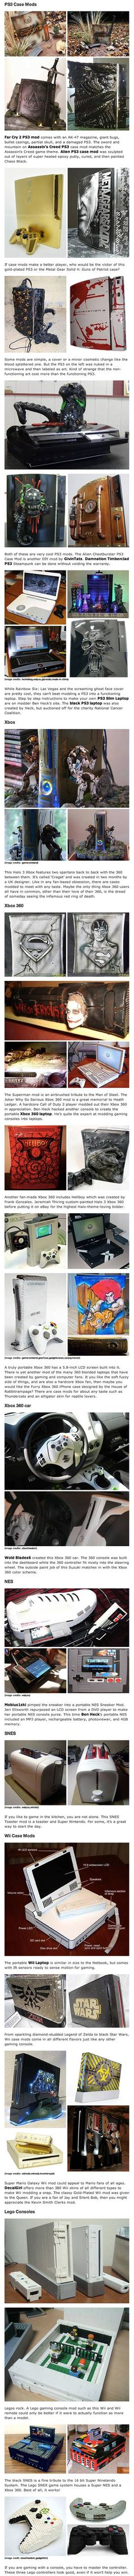 111 Best Console Mods Images Consoles Games Computers Custom Mod Micro Usb Flash Drive Diy Case Modding And Weve Rounded Up A Few Amazing Video Game That Think Outside The